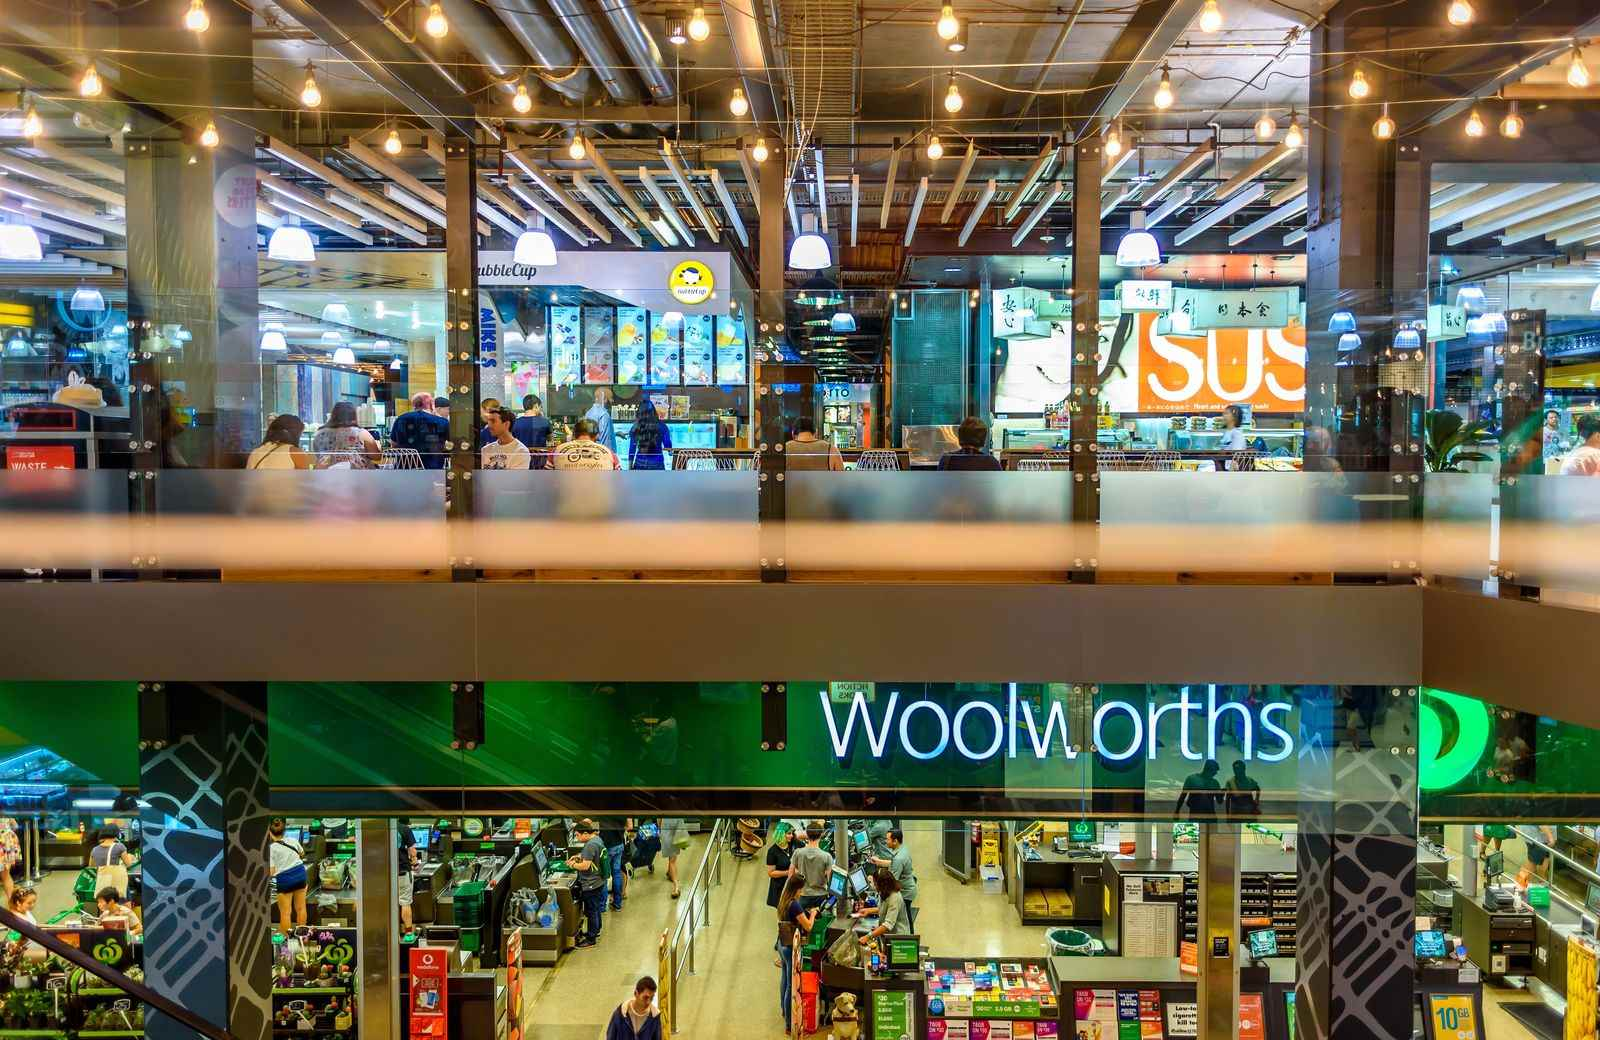 If you're lucky, there might be a Woolworth's inside of a shopping center near you and there might even be other little markets in the shopping center too.